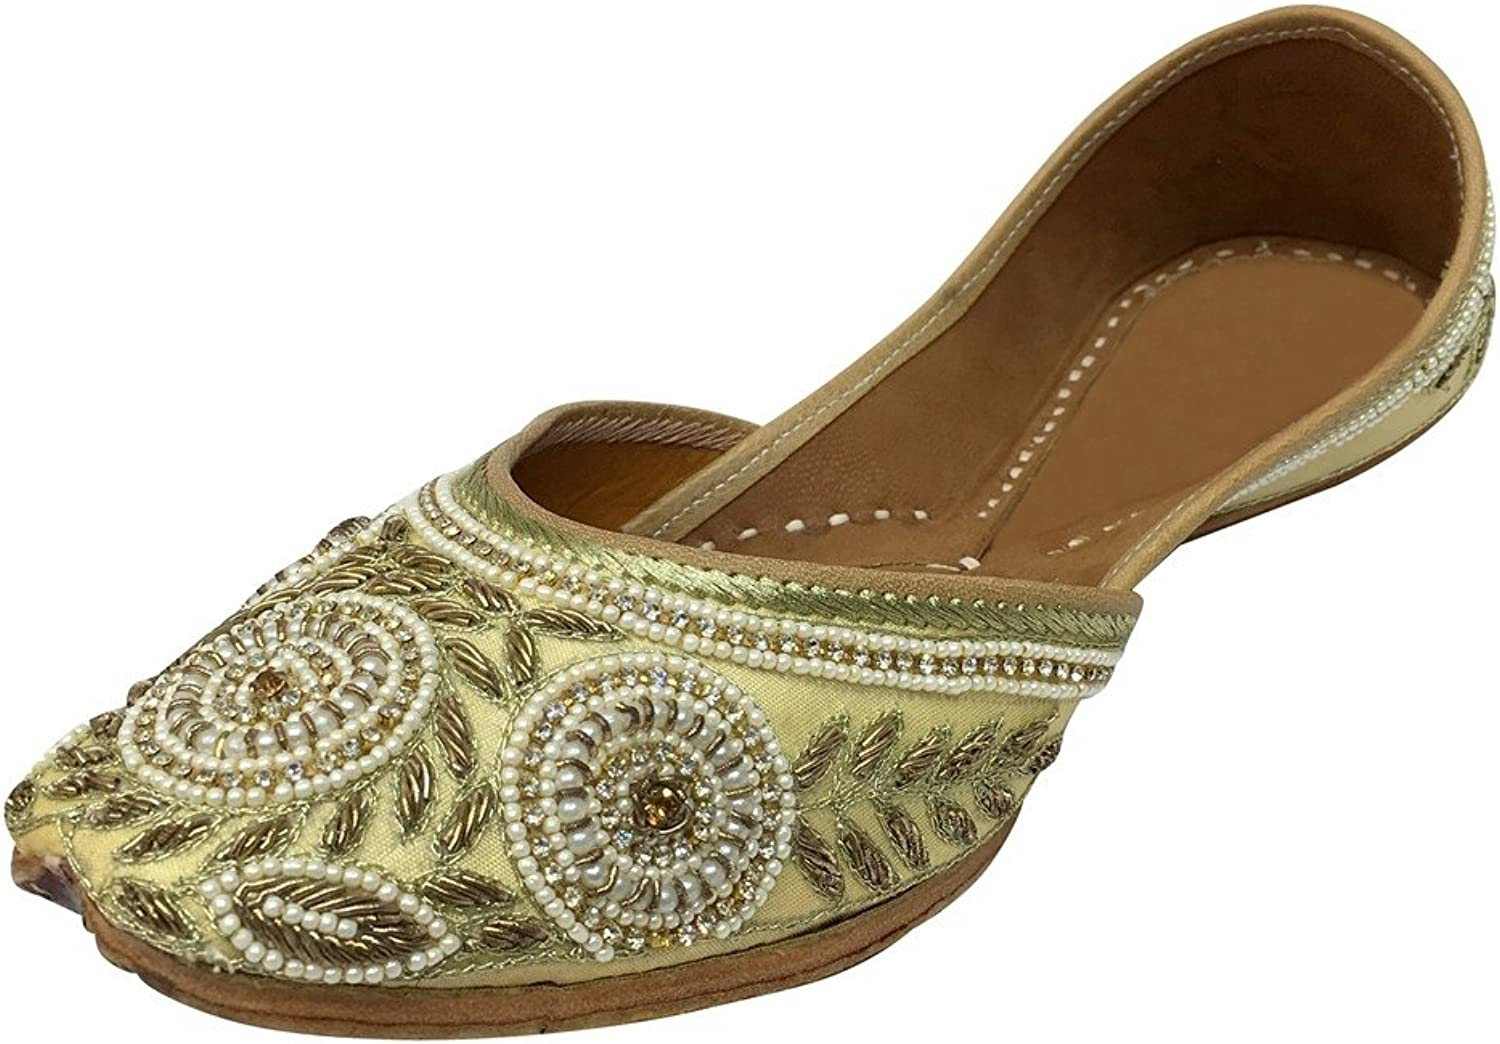 Step n Style Embroidered Handmade Women Ballet shoes Mojari Sandel Juti Flat Khussa DD995